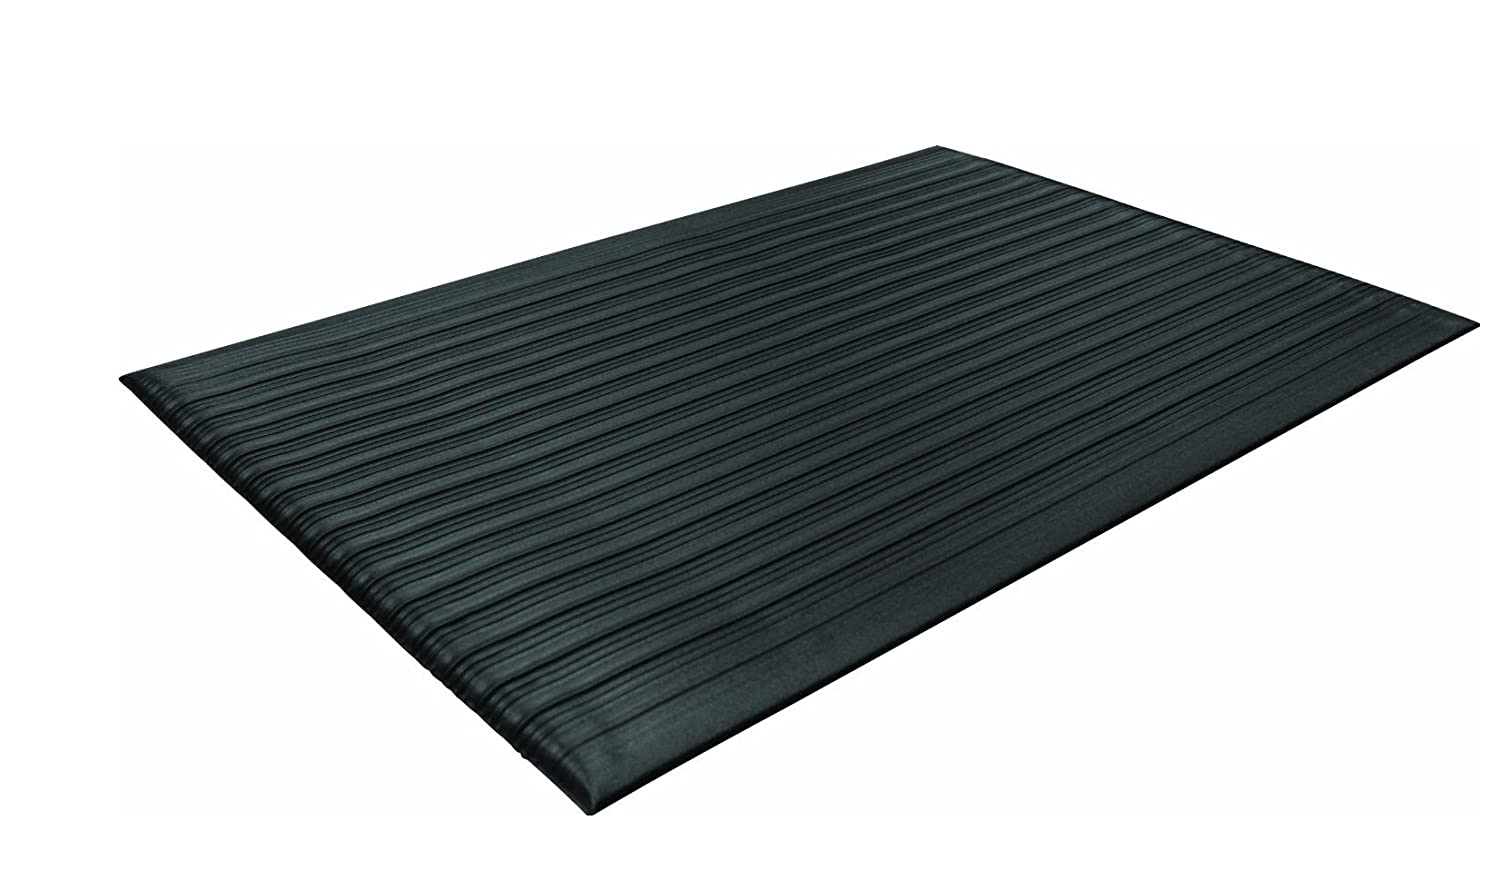 Guardian Air Step  Anti-Fatigue Floor Mat, Vinyl, 27'x32', Black, Reduces fatigue and discomfort, Can be easily cut to fit any space 27x32 Millennium Mat Company 24273602